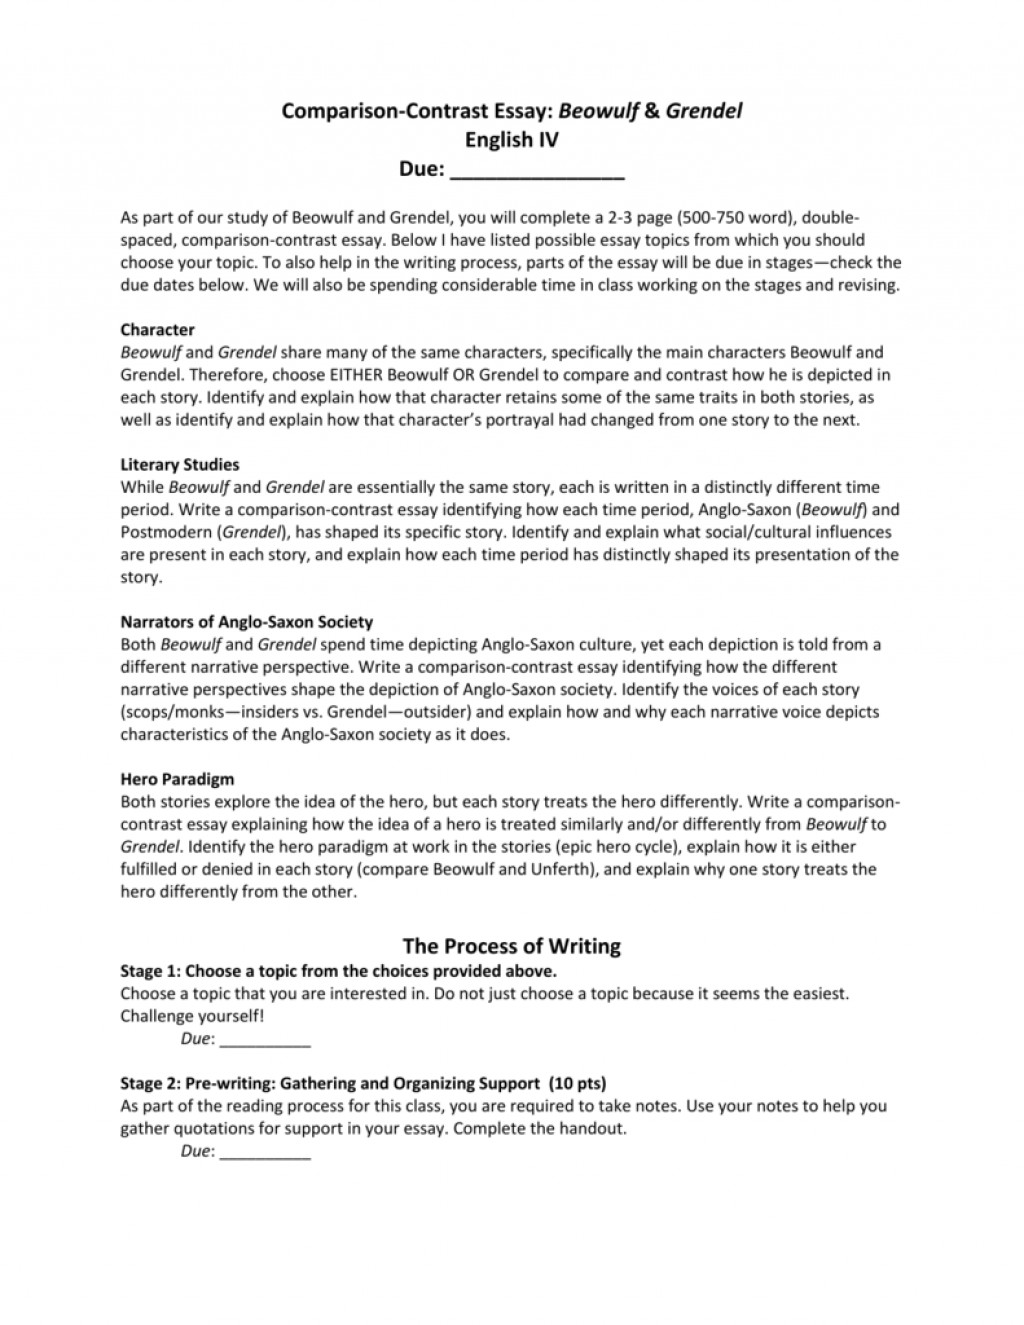 015 008061732 1 Essay Example Comparison And Awful Contrast Examples Point-by-point Large